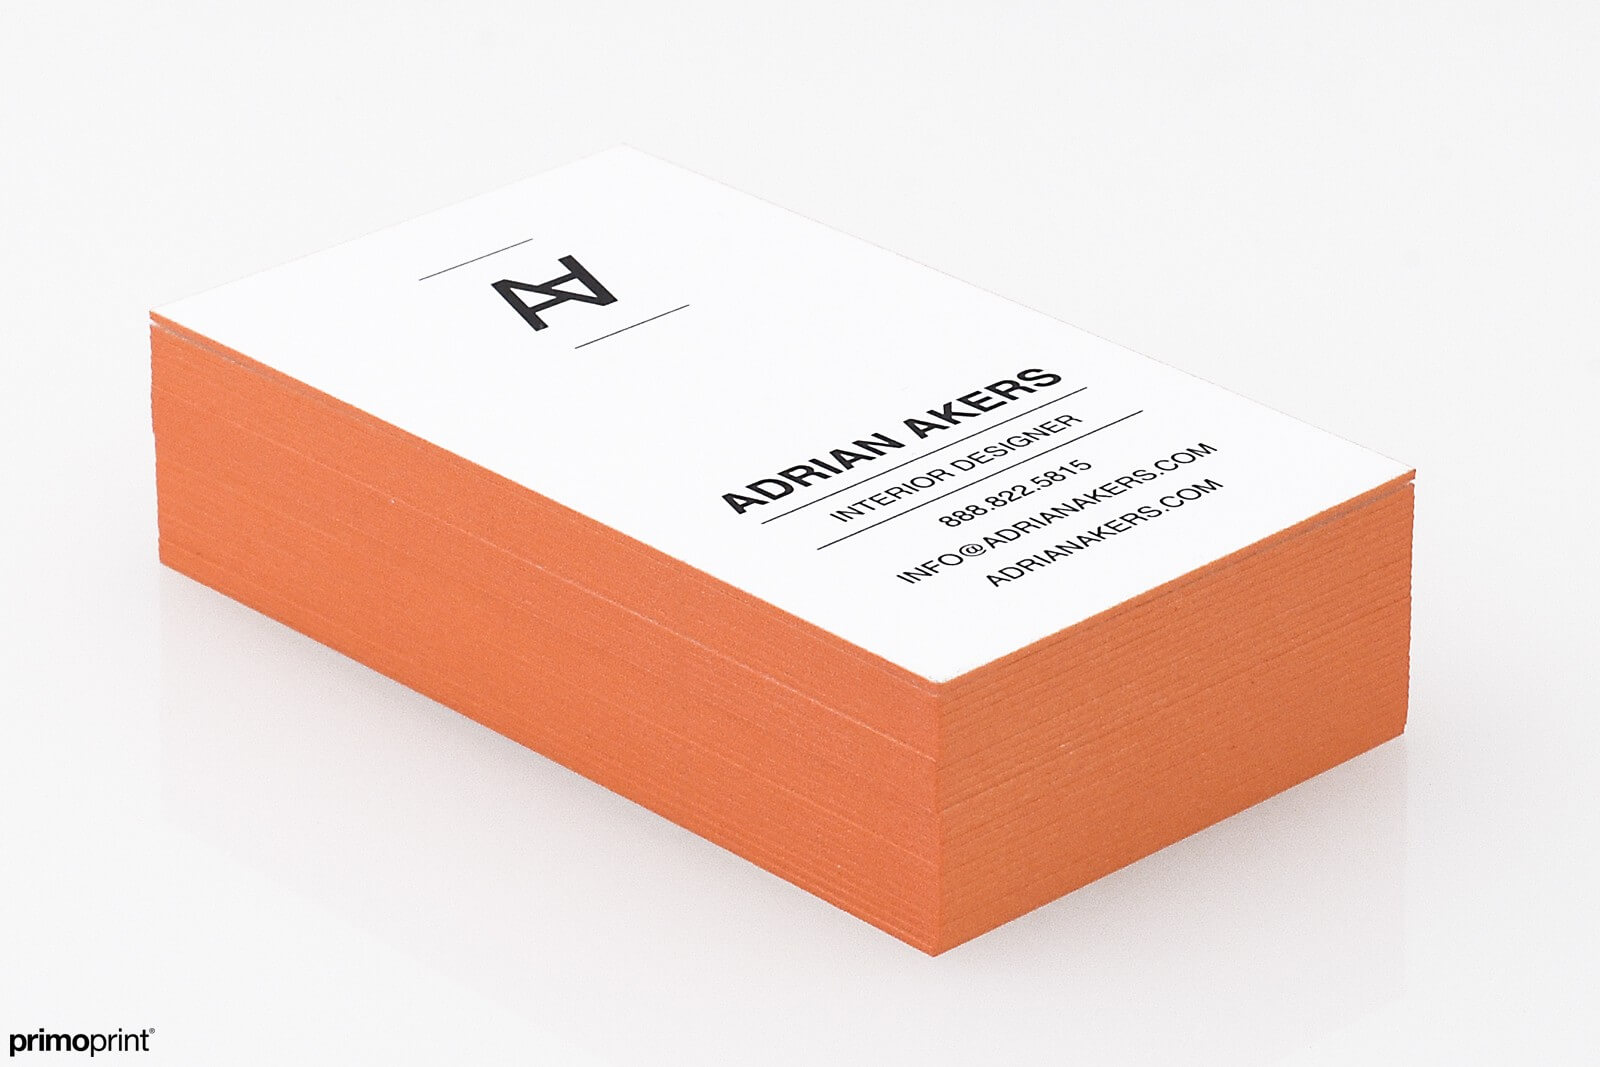 32pt thick paper stock the modcard primoprint business card painted edges 32pt graphic design colourmoves Gallery